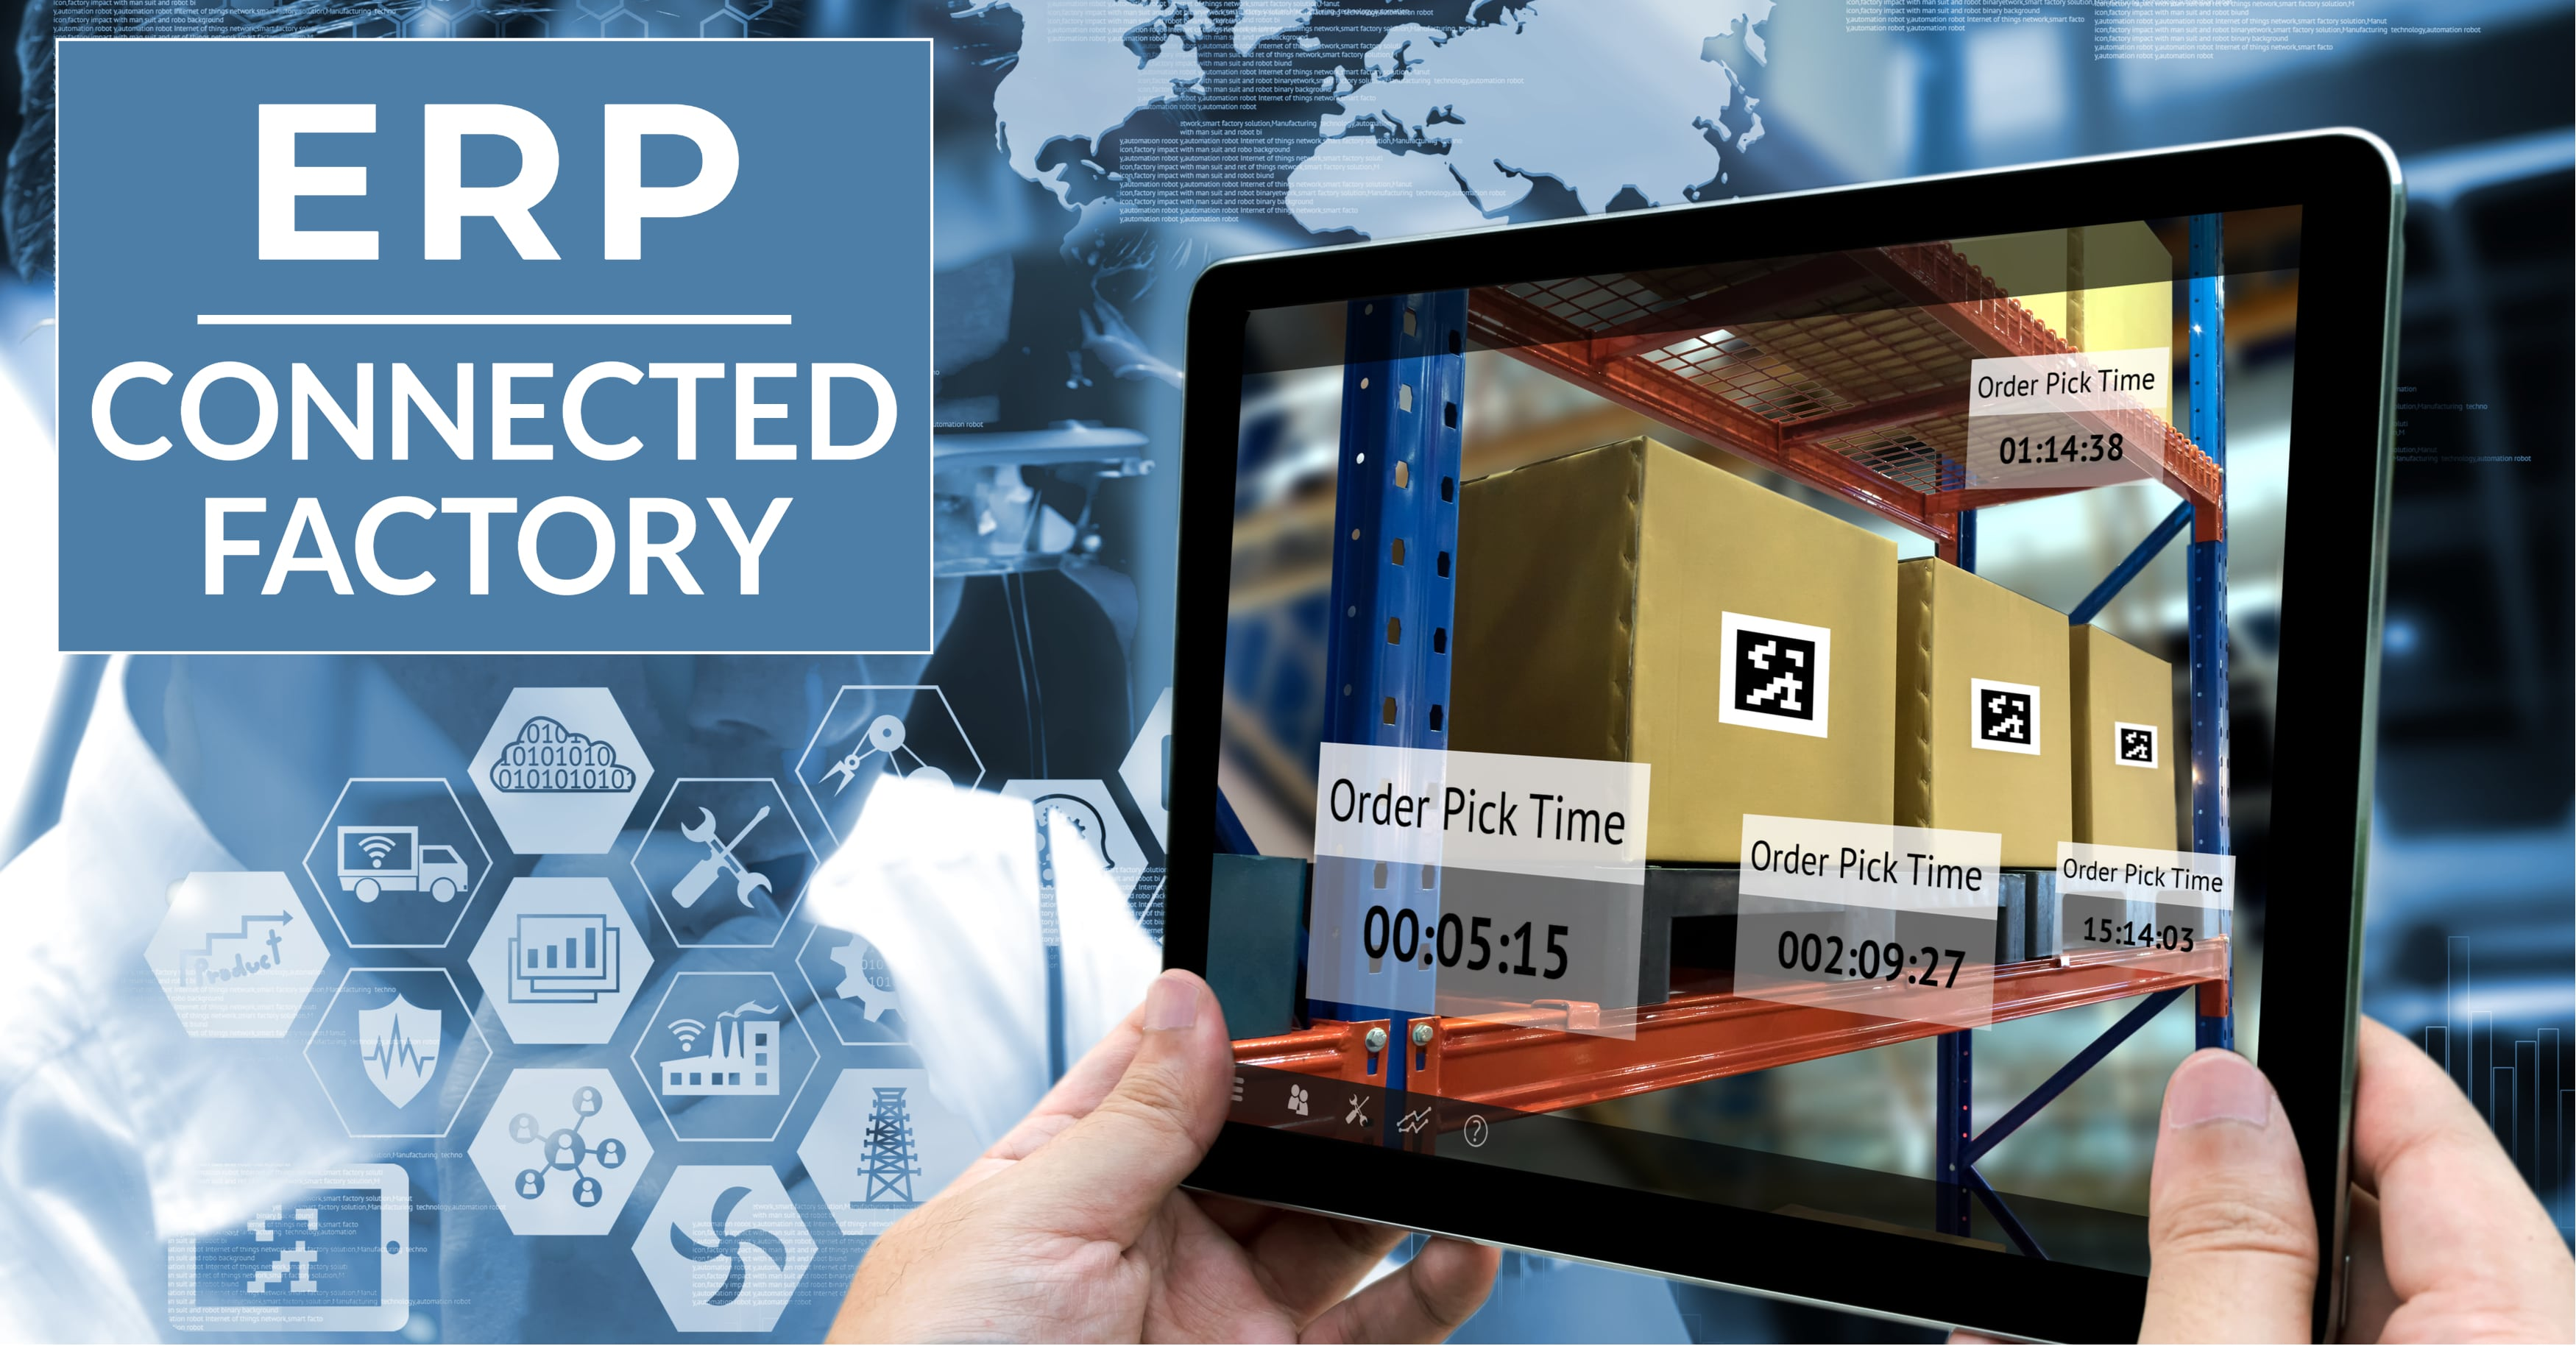 ERP Connected Factory